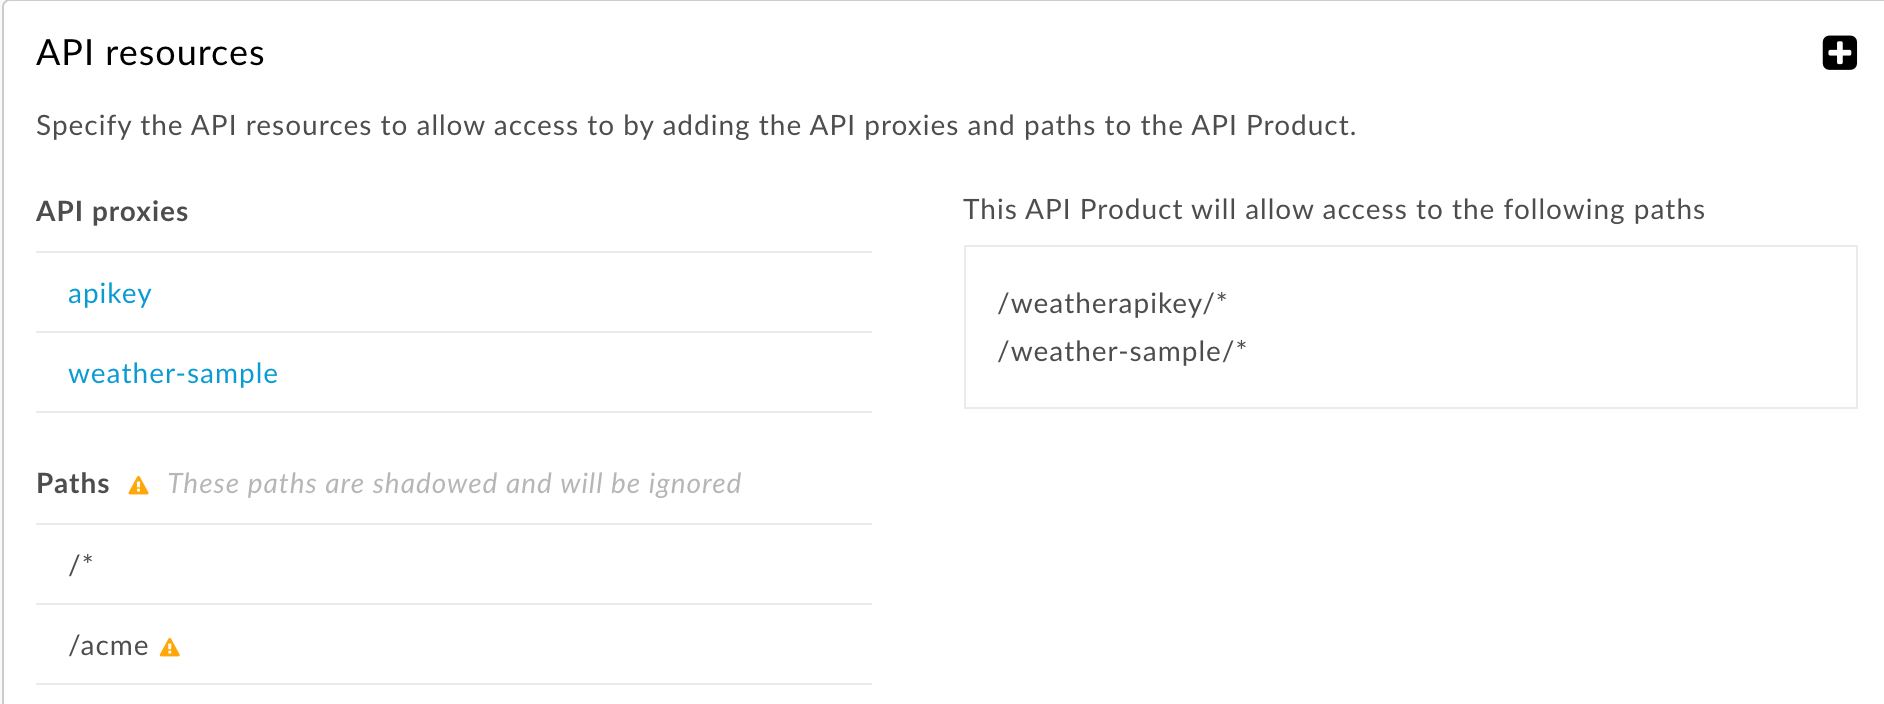 Resource path applied to all API proxies and more specific resource path is ignored